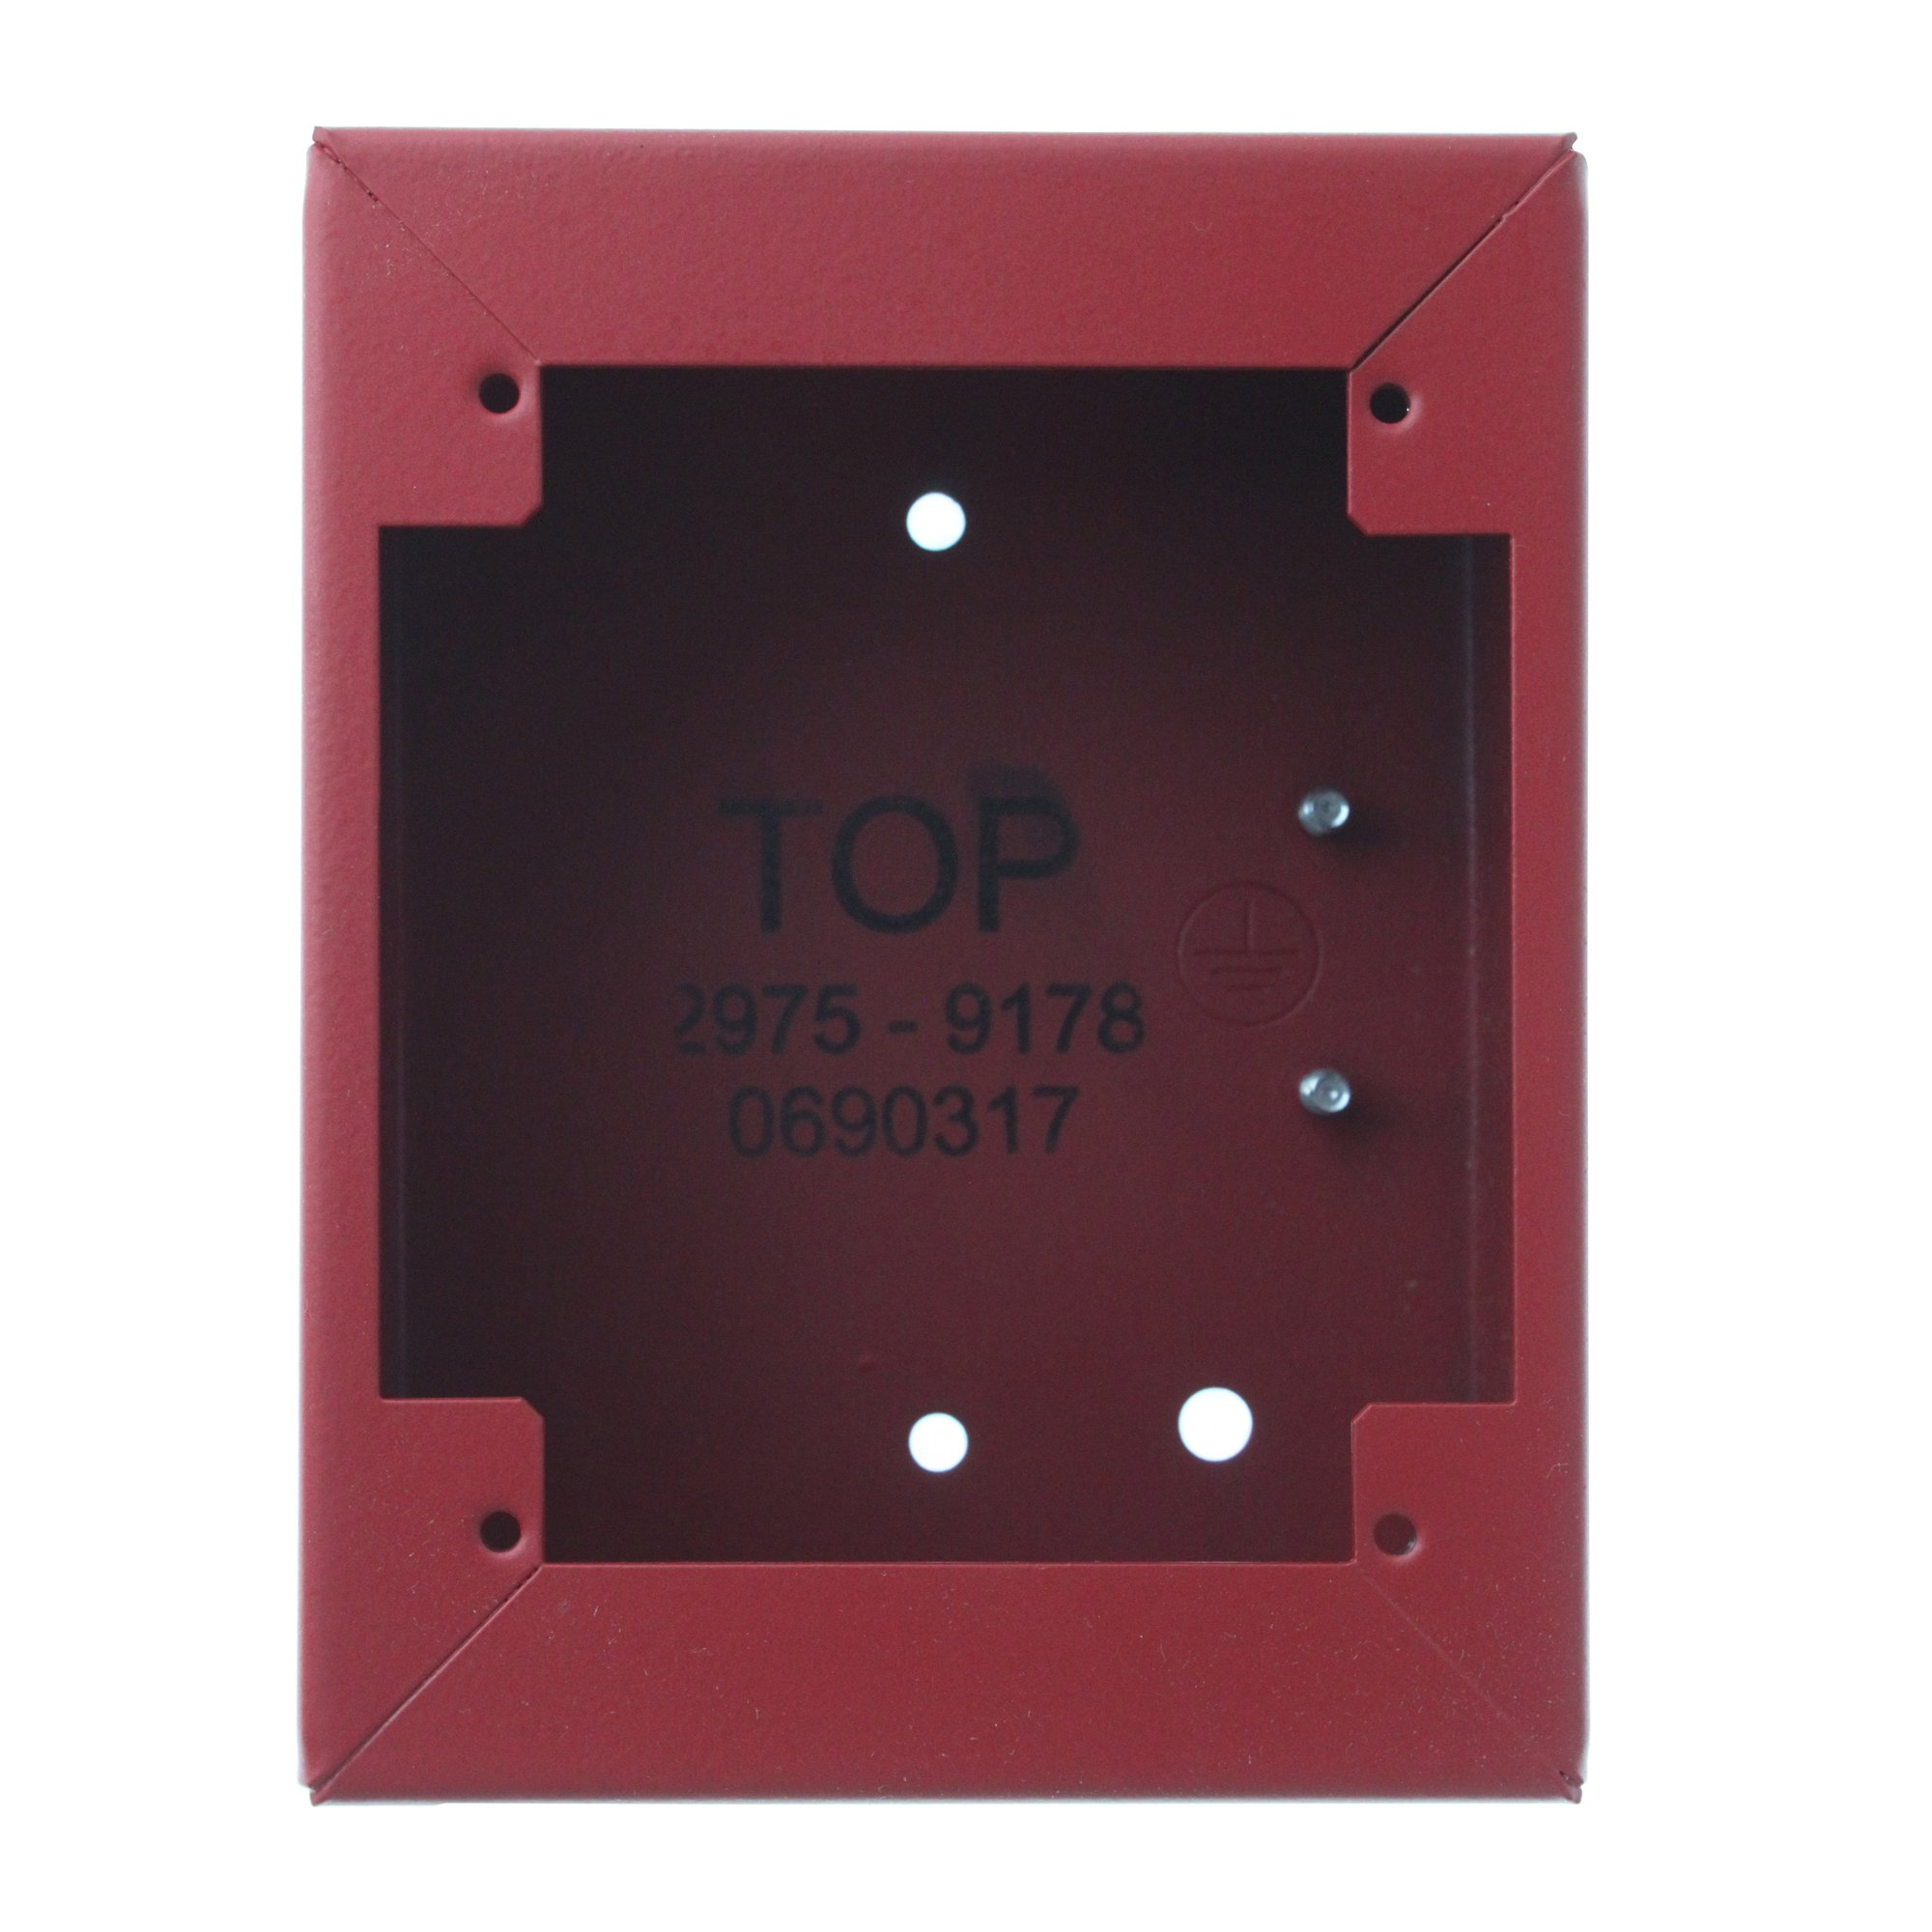 Simplex 2975-9178 0690317 Pull Station Surface Mount Steel Back Box, Red